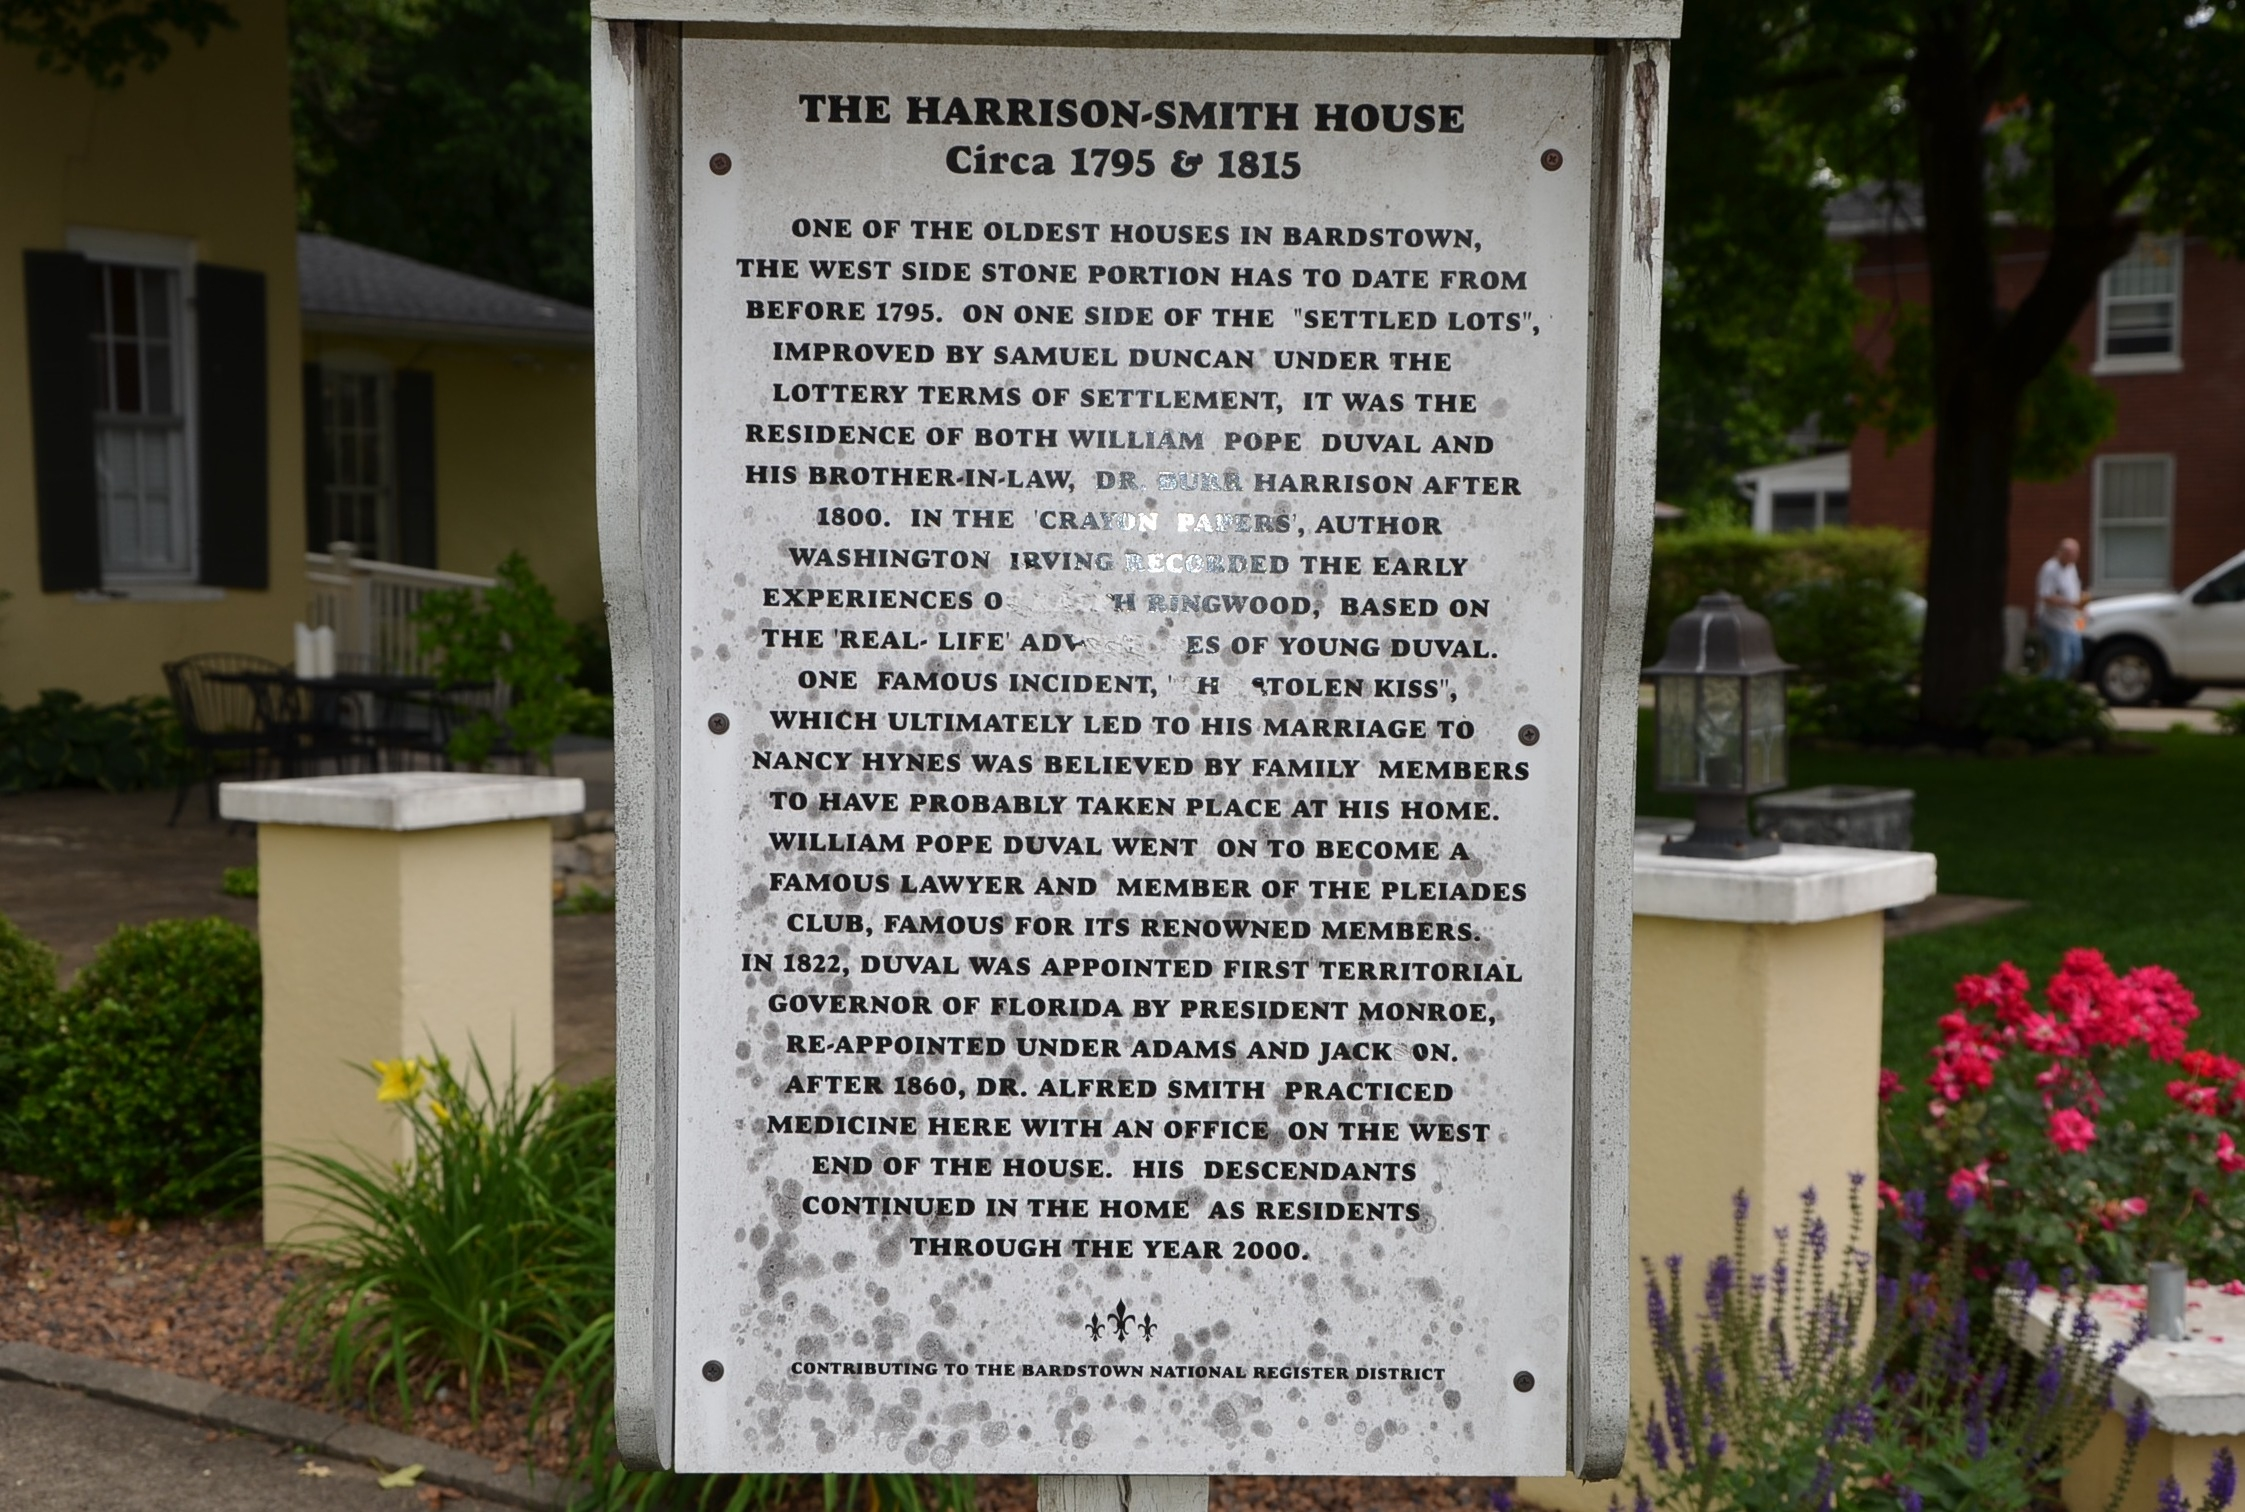 The Harrison-Smith House Marker